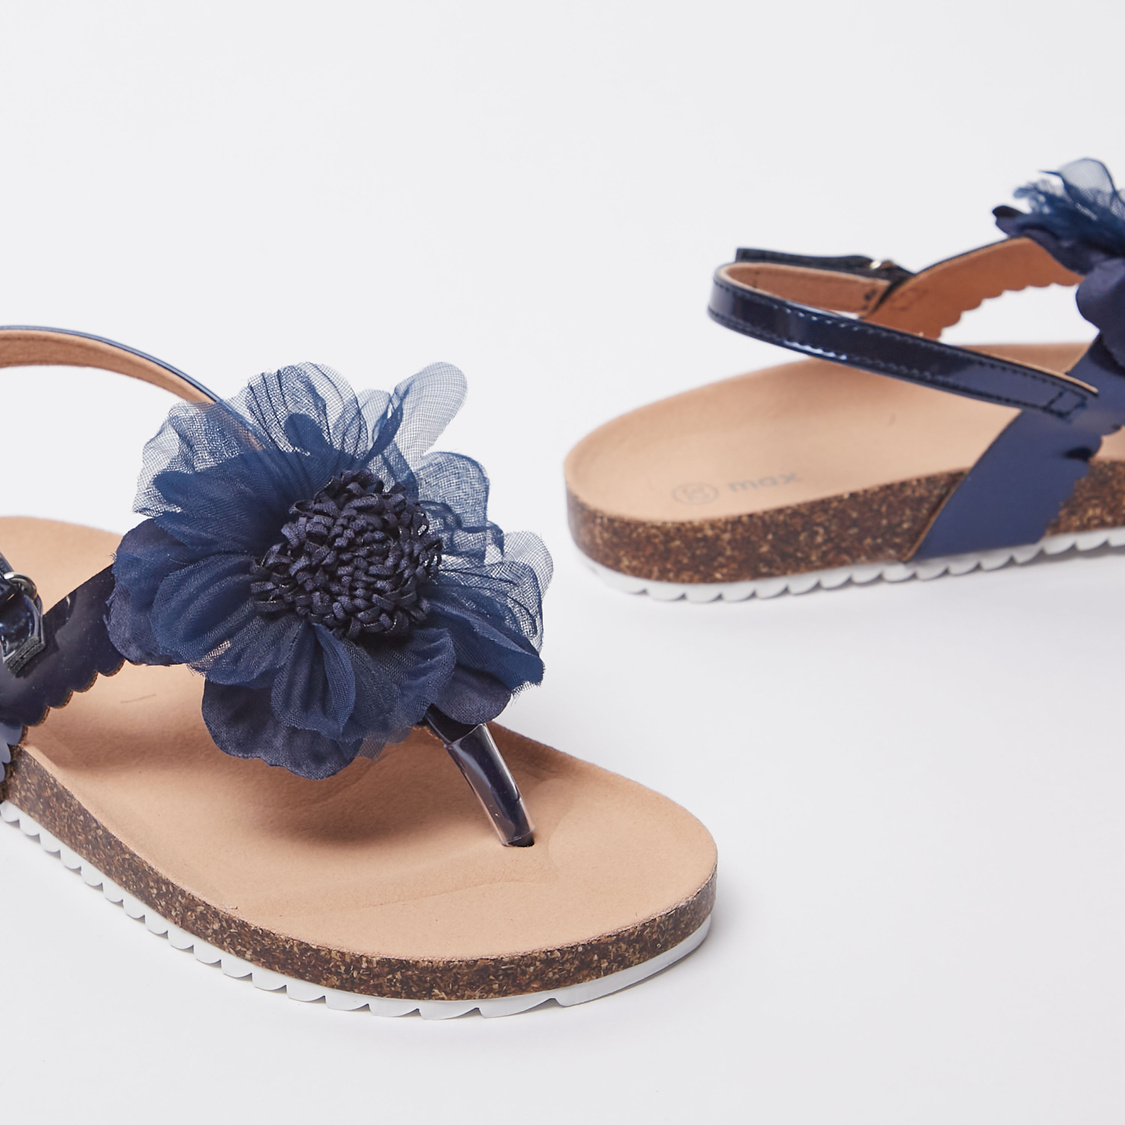 Flower Applique Sandals with Hook and Loop Closure